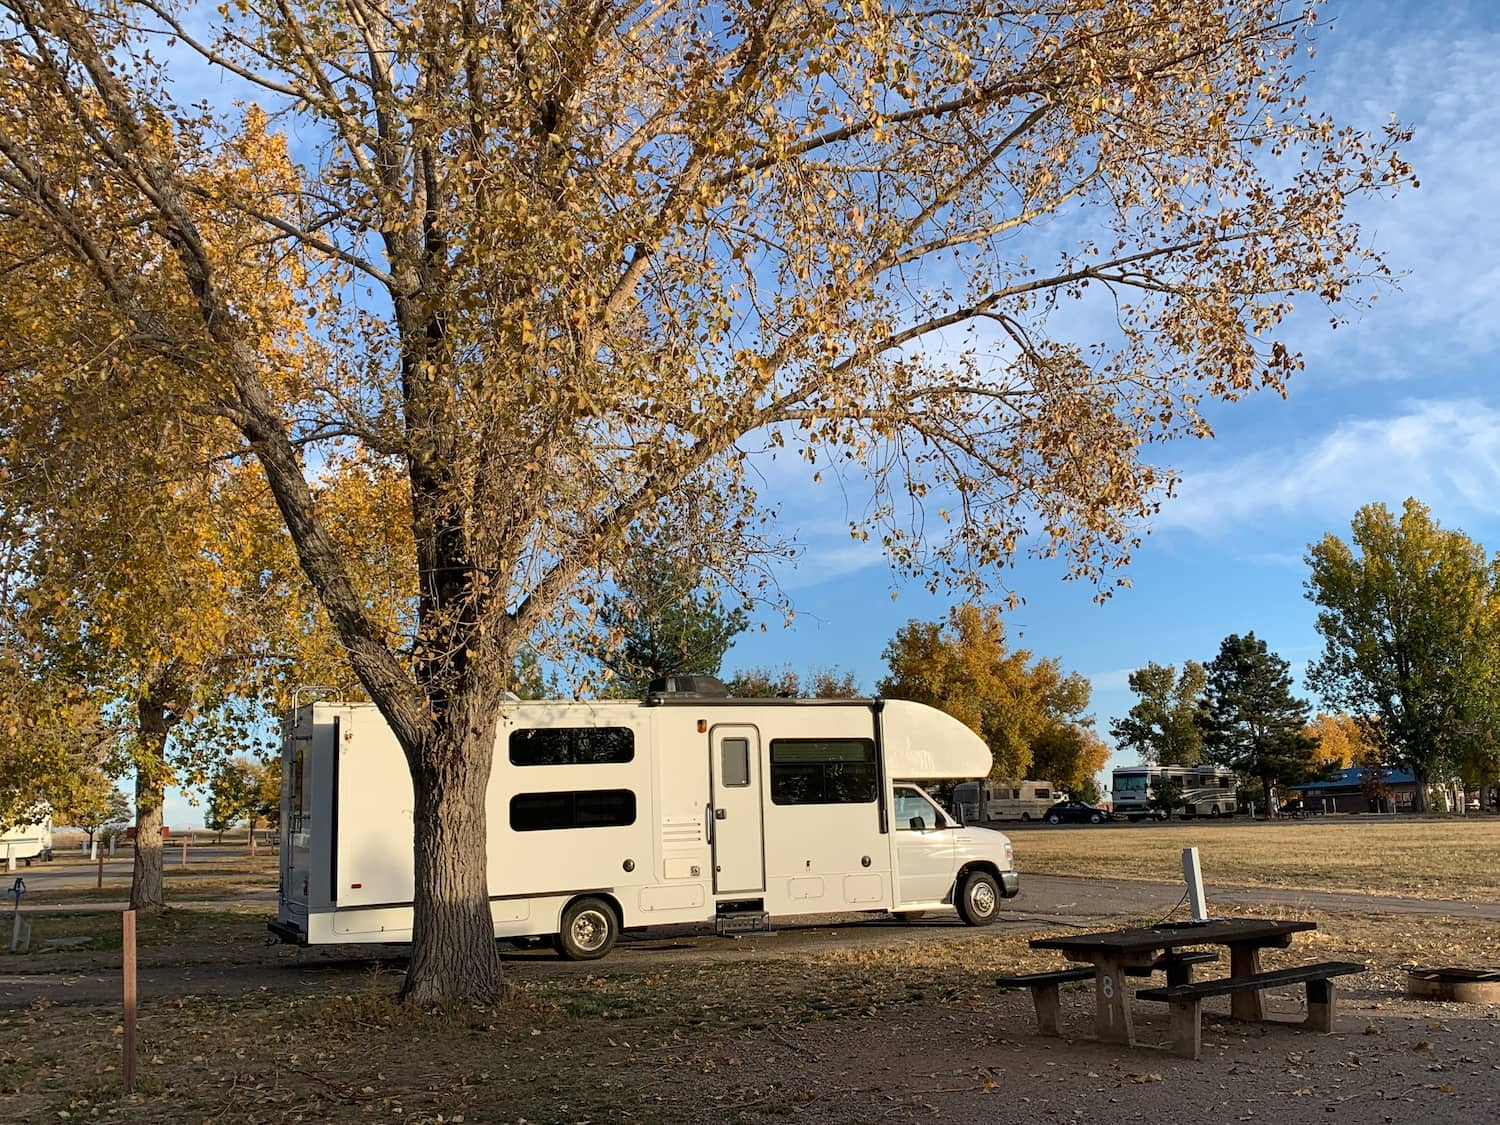 RV aprked at campsite in the fall beside a tree and picnic table.